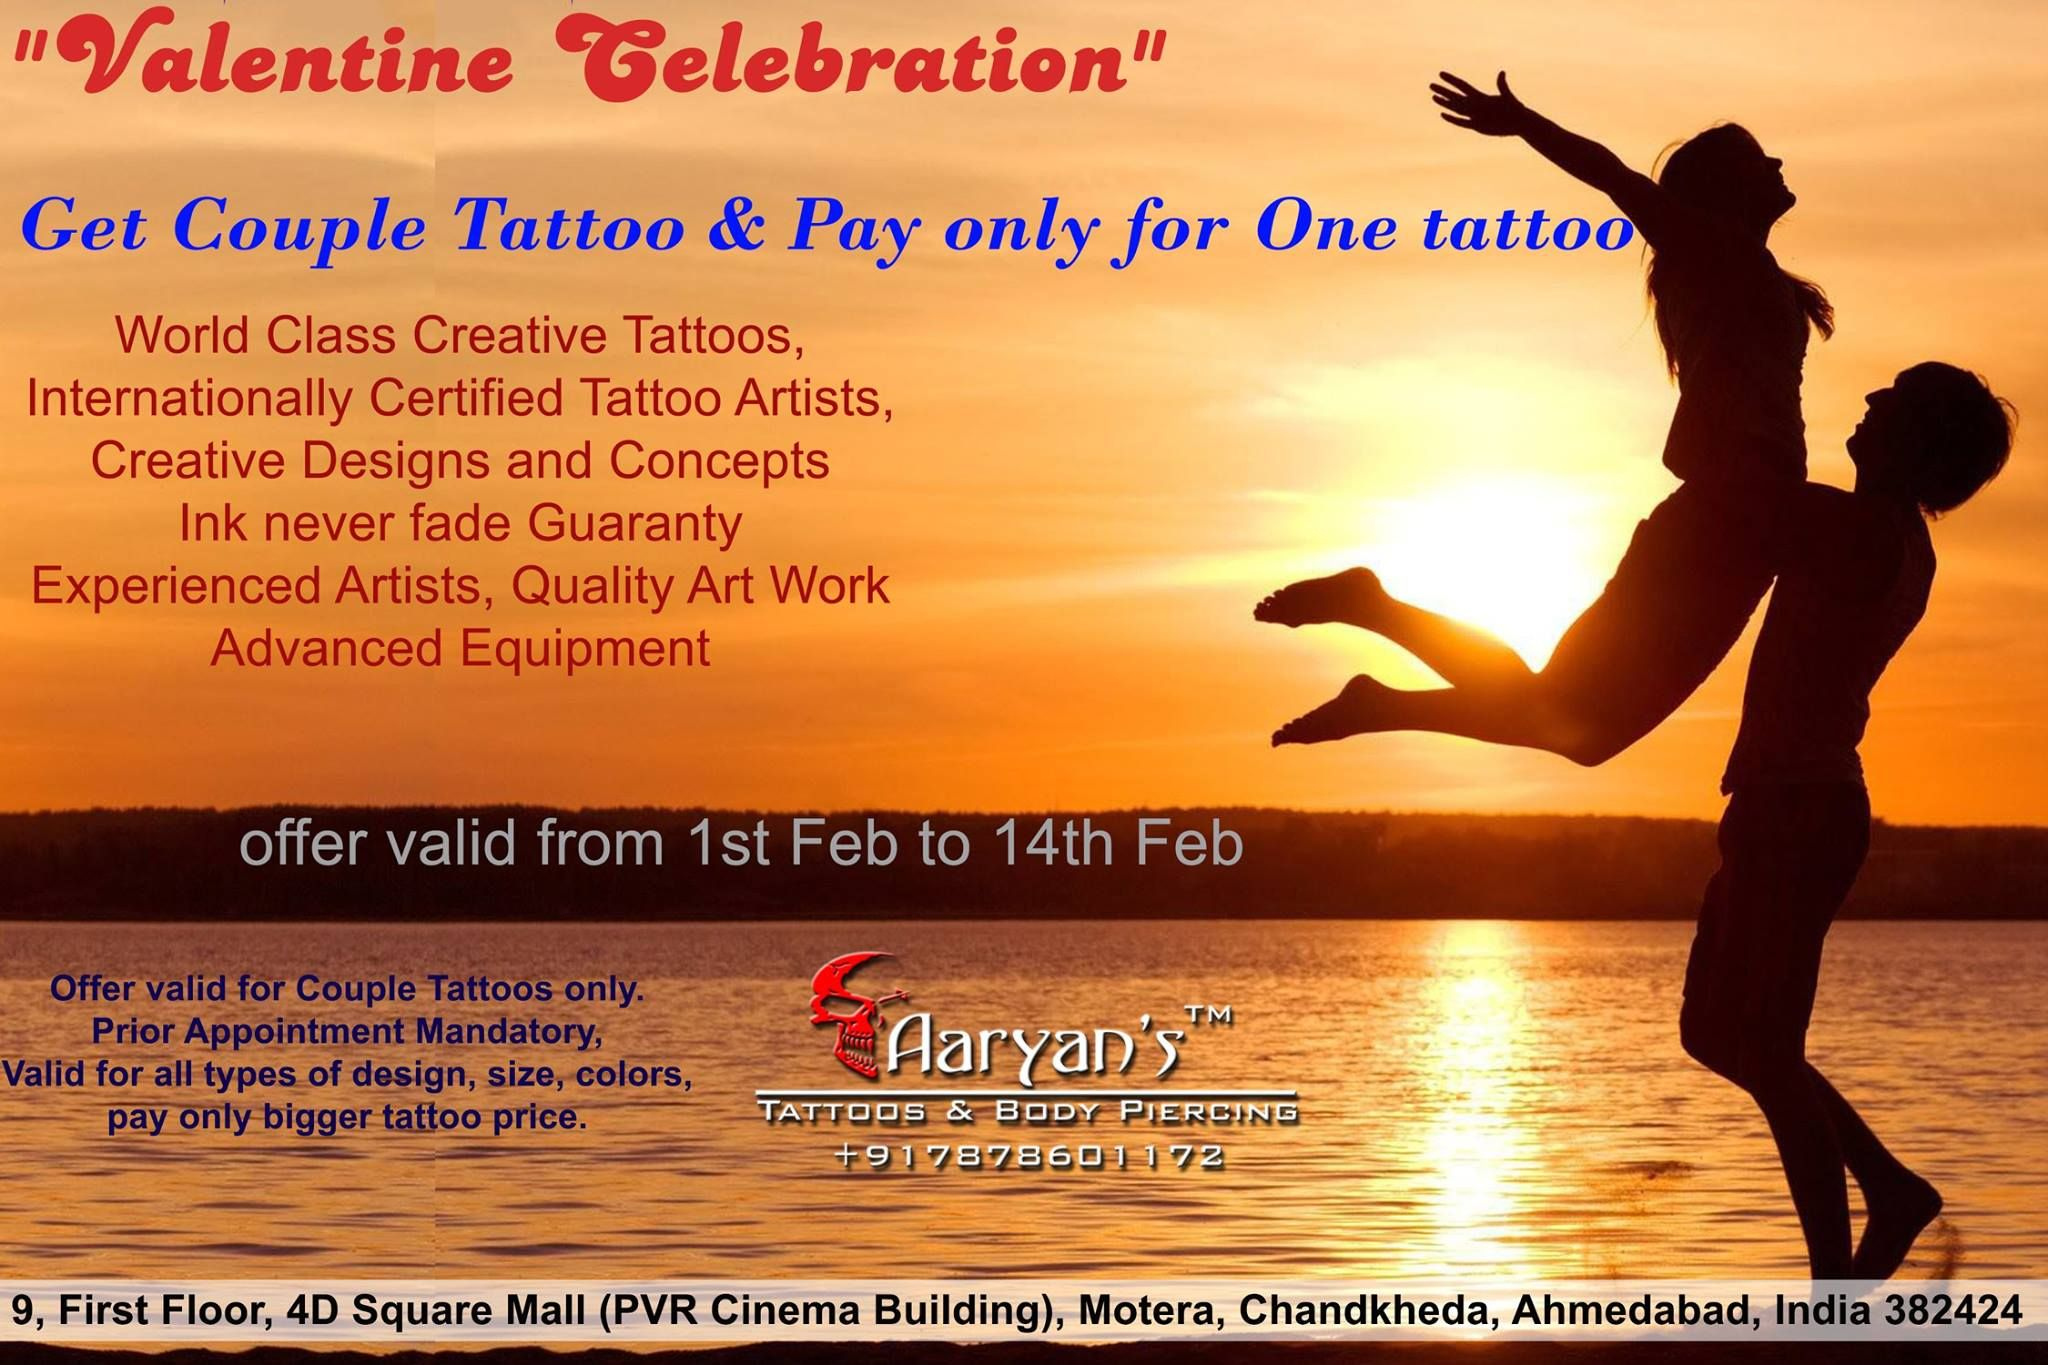 Time To Decorate Your Love Amazing Offer At Aaryans2 Limited Slots Available Book Your Appointment For Fr Creative Tattoos Free Tattoo Couple Tattoos